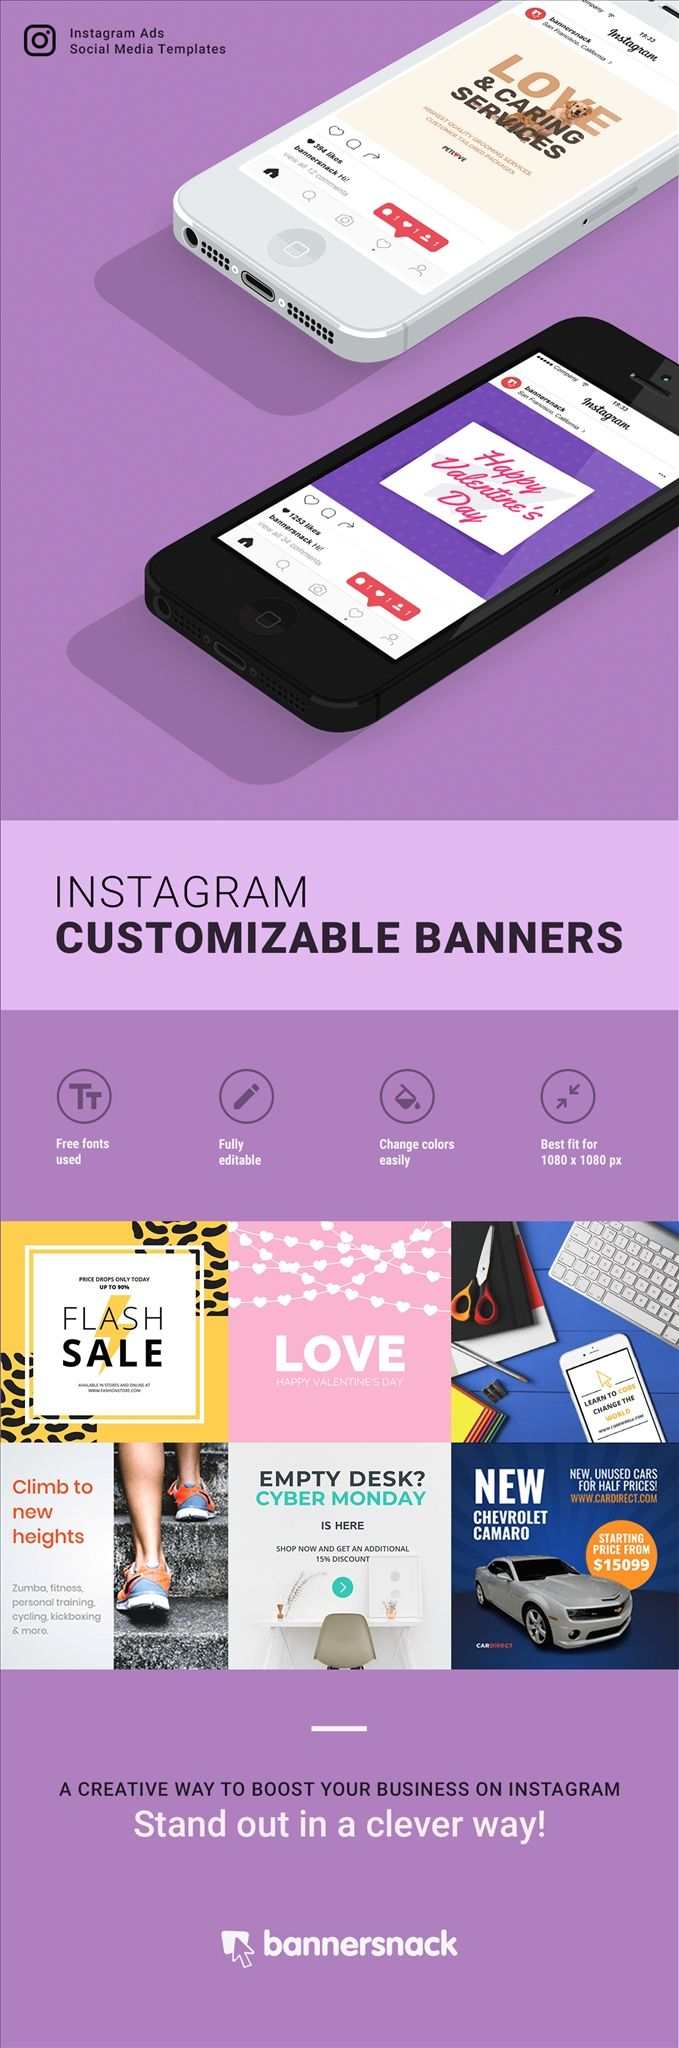 Need to create Banners for Instagram? Get inspired by the designs Bannersnack has to offer, edit them online and make them match your brand.